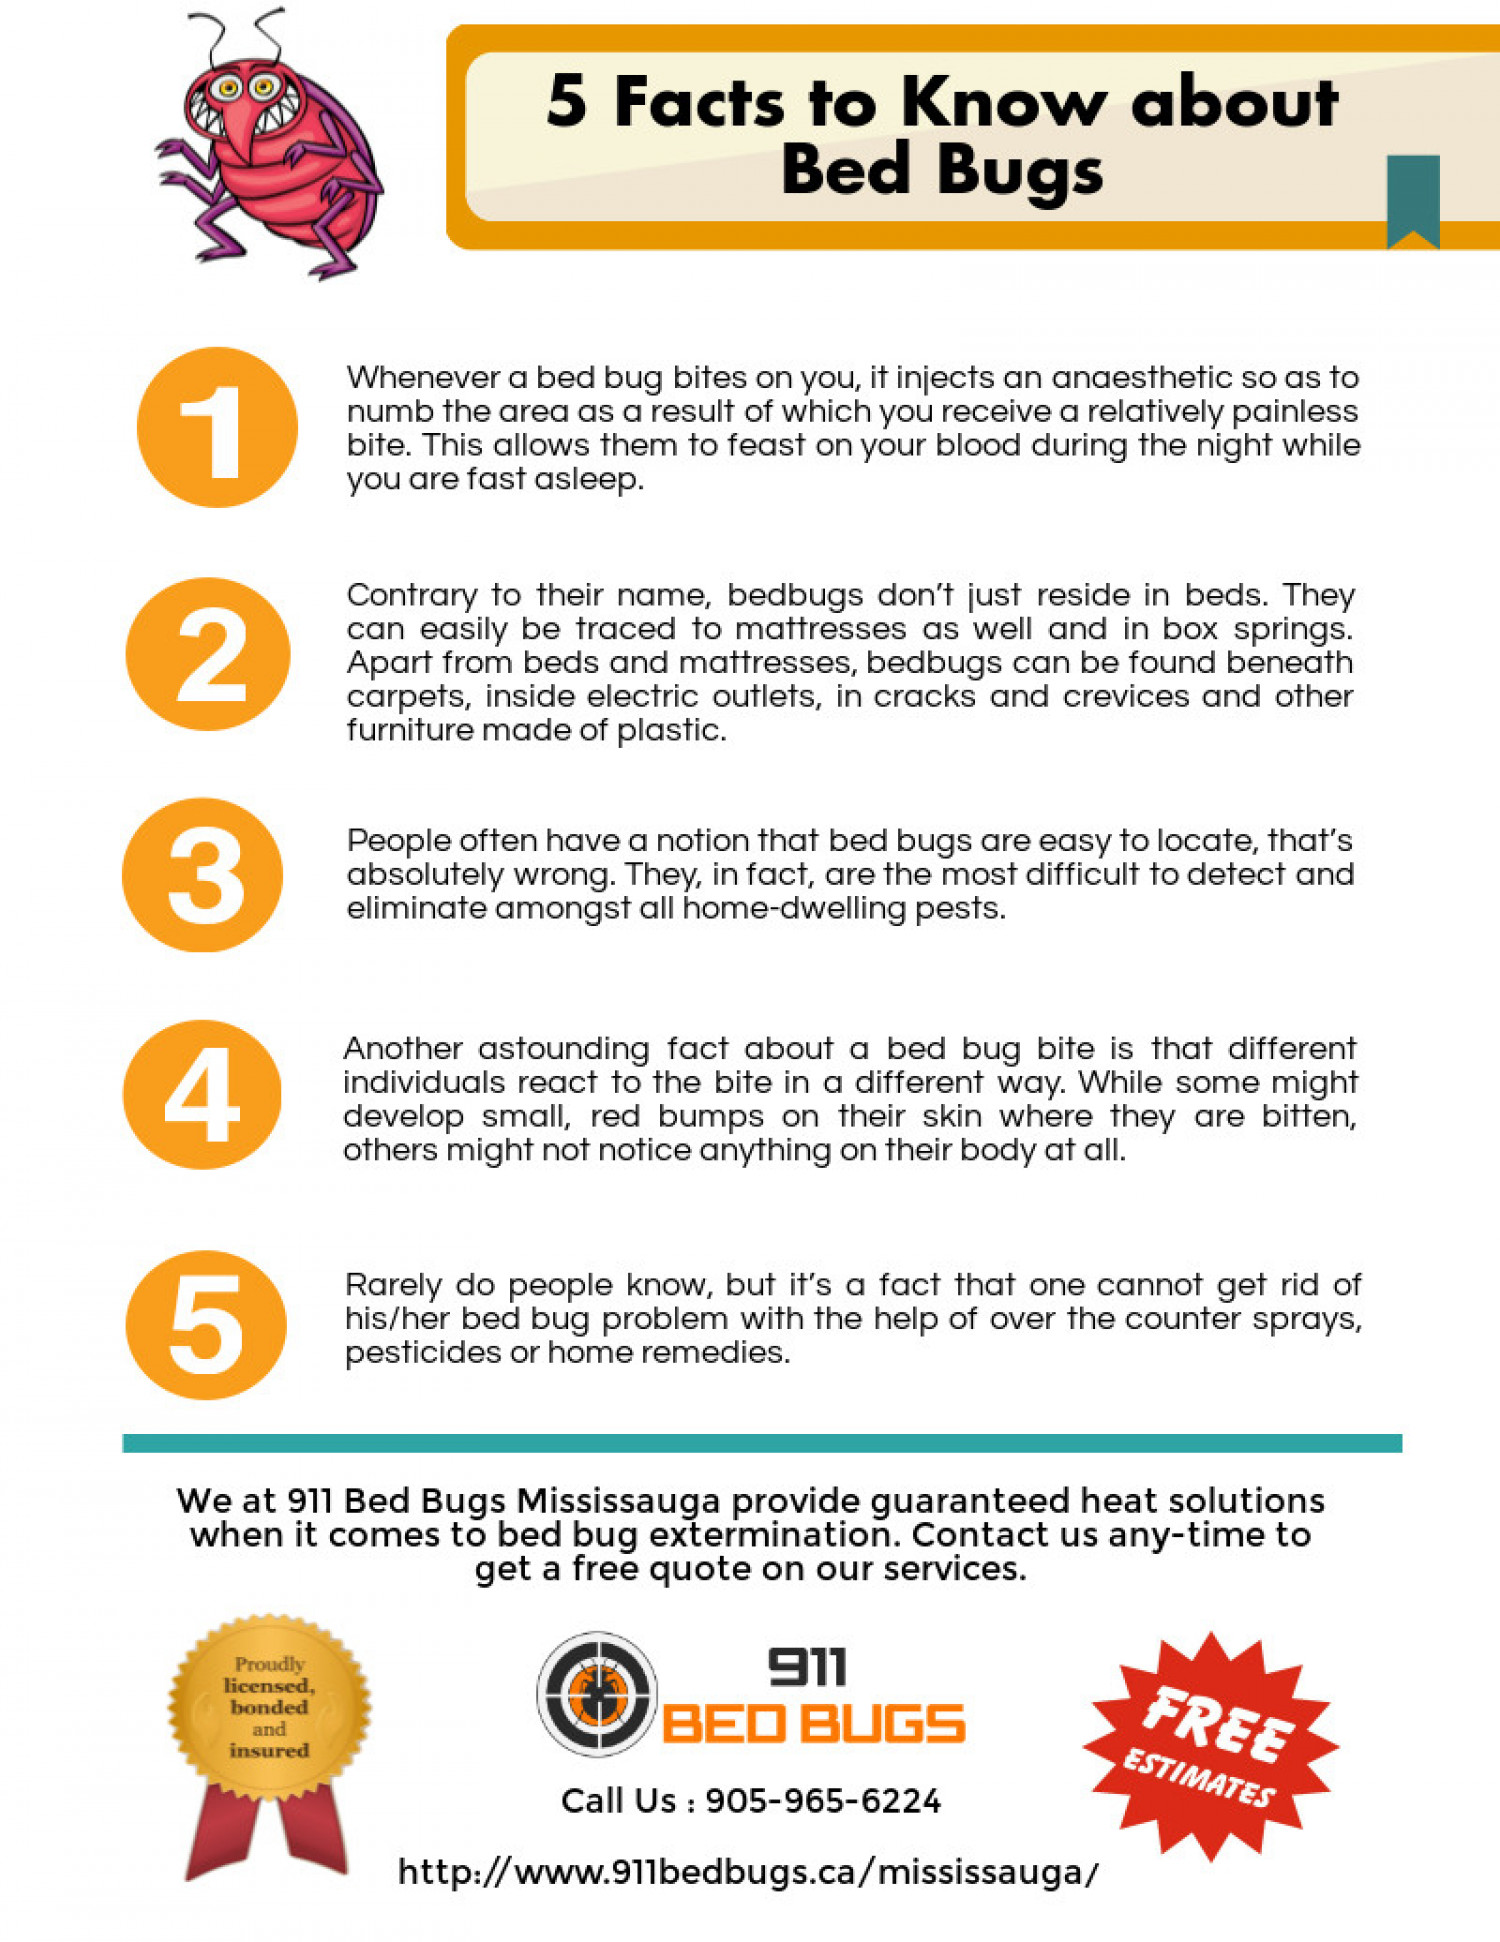 heat bugs how infographic out solutions facts bedbugout bed keep ehs to by environmental on